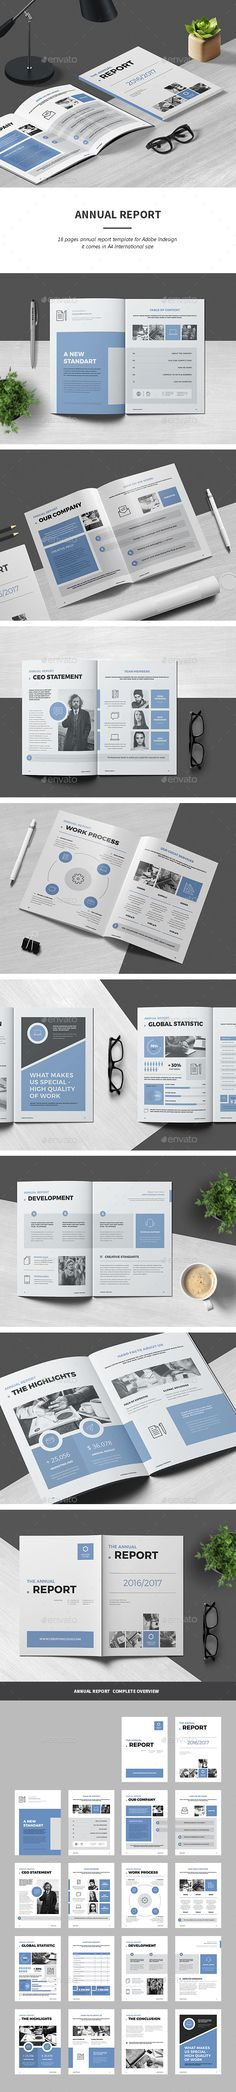 109 best Annual Report images on Pinterest Brochure template - free annual report templates